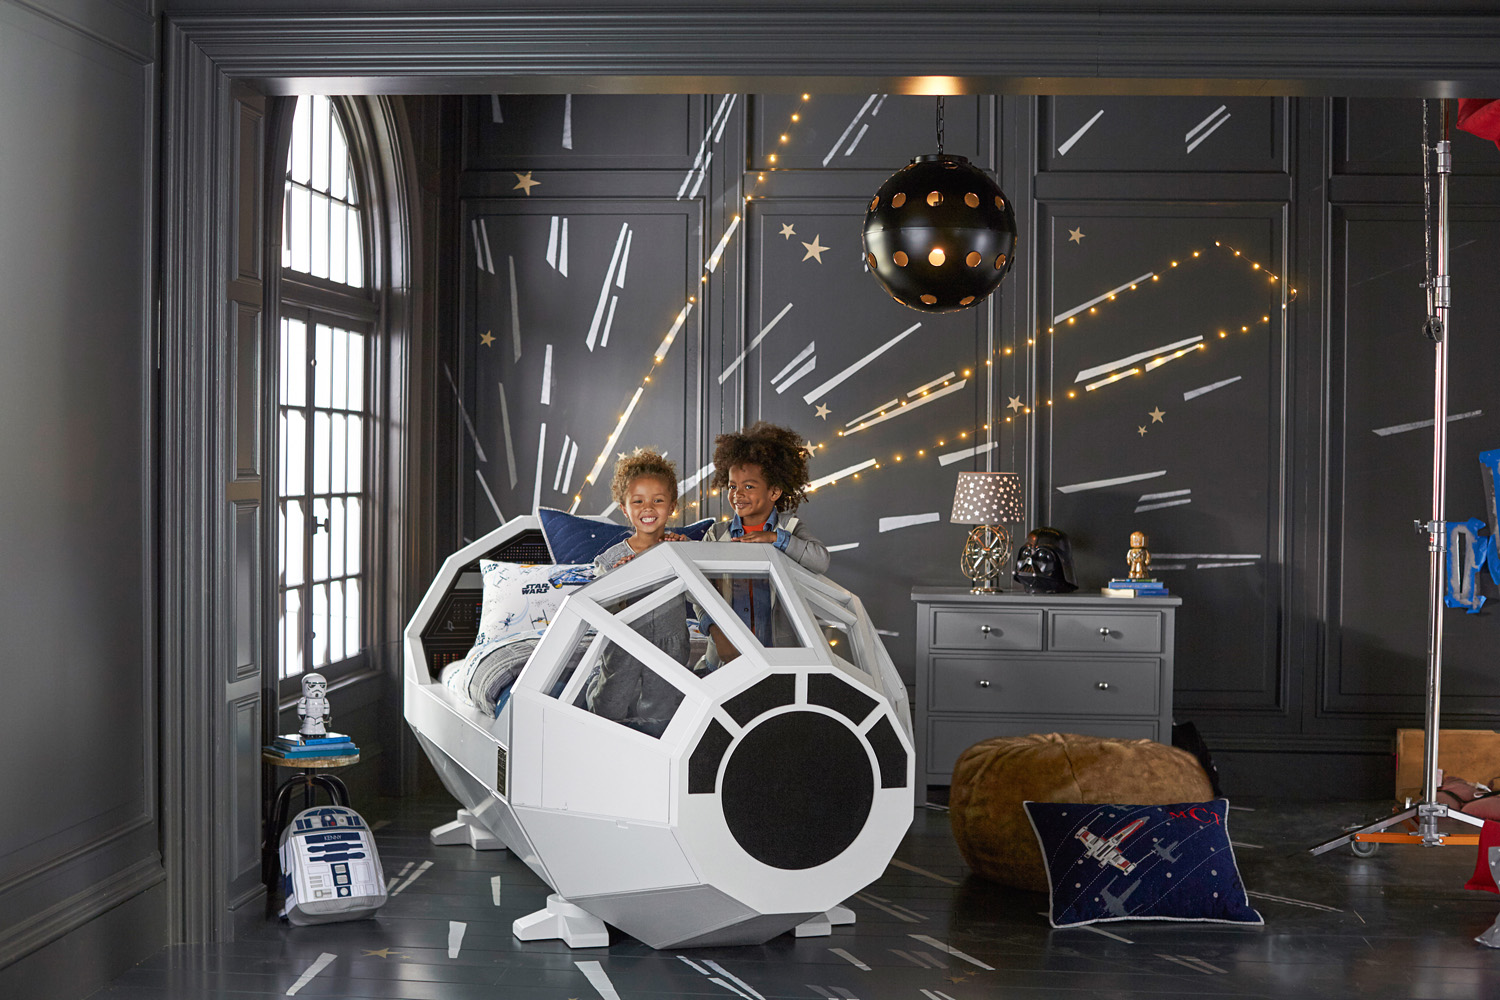 Pottery barn star wars collection preview for Star home decorations